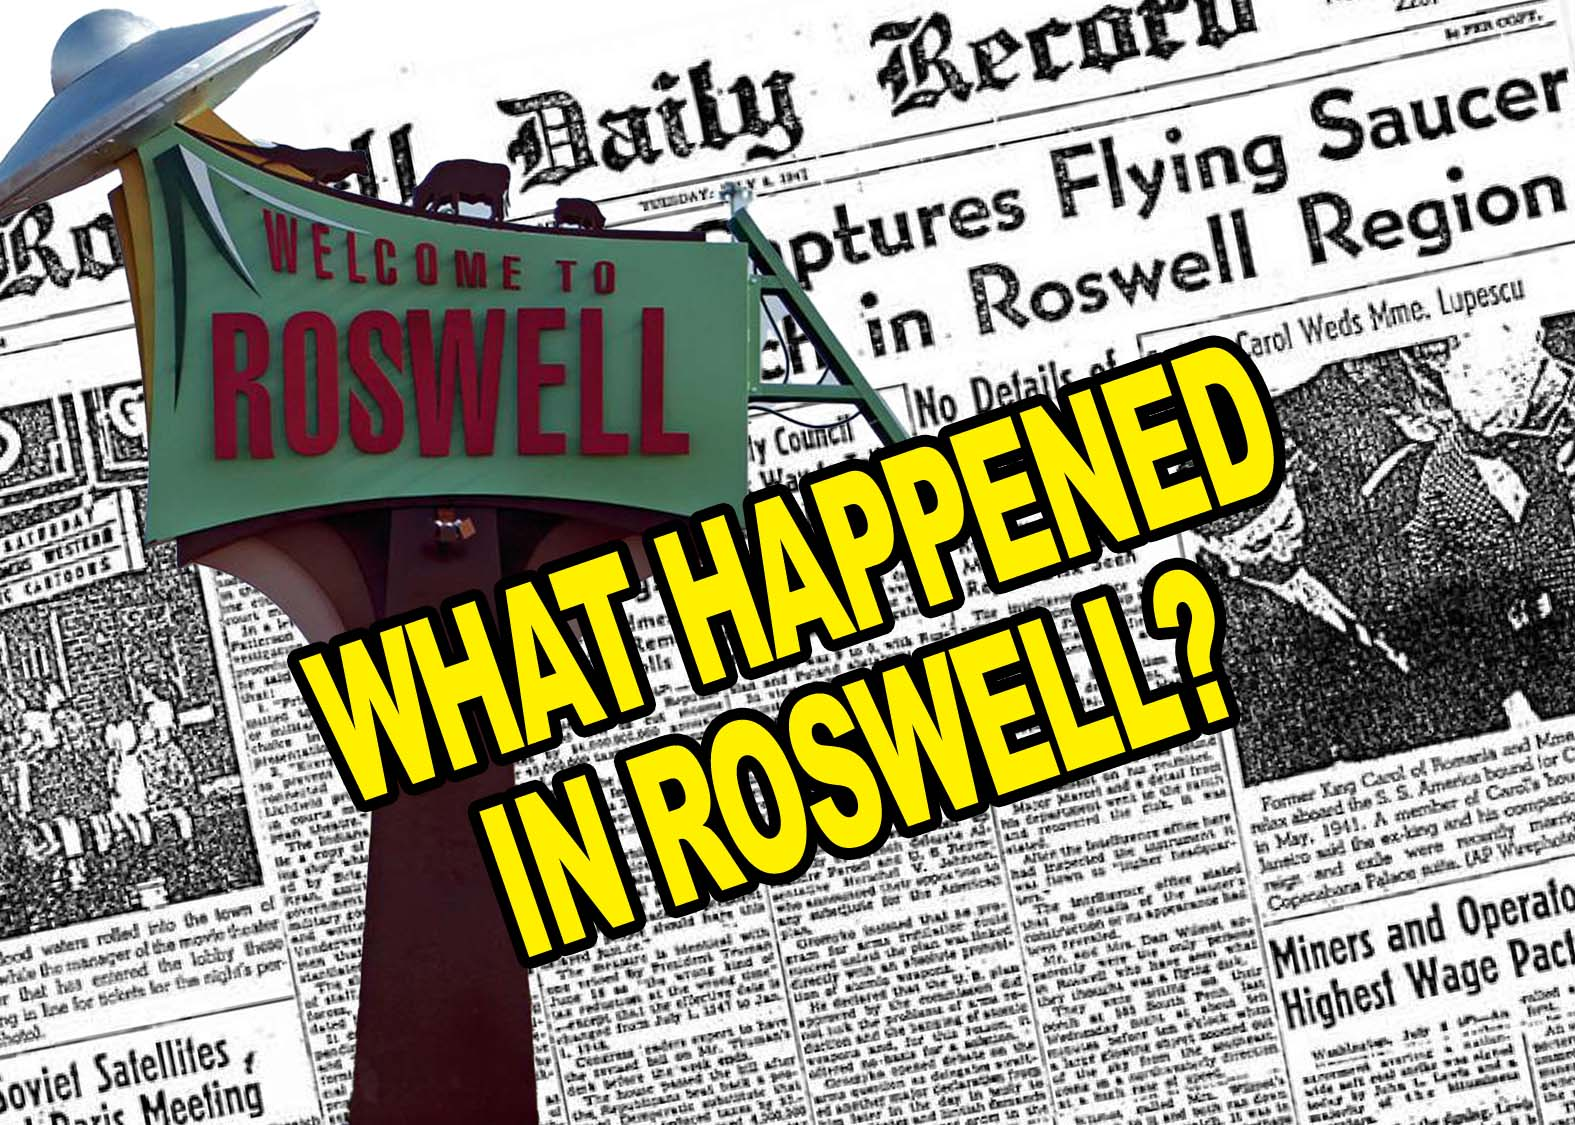 What Happened at Roswell? Now Available From Get Spooky!